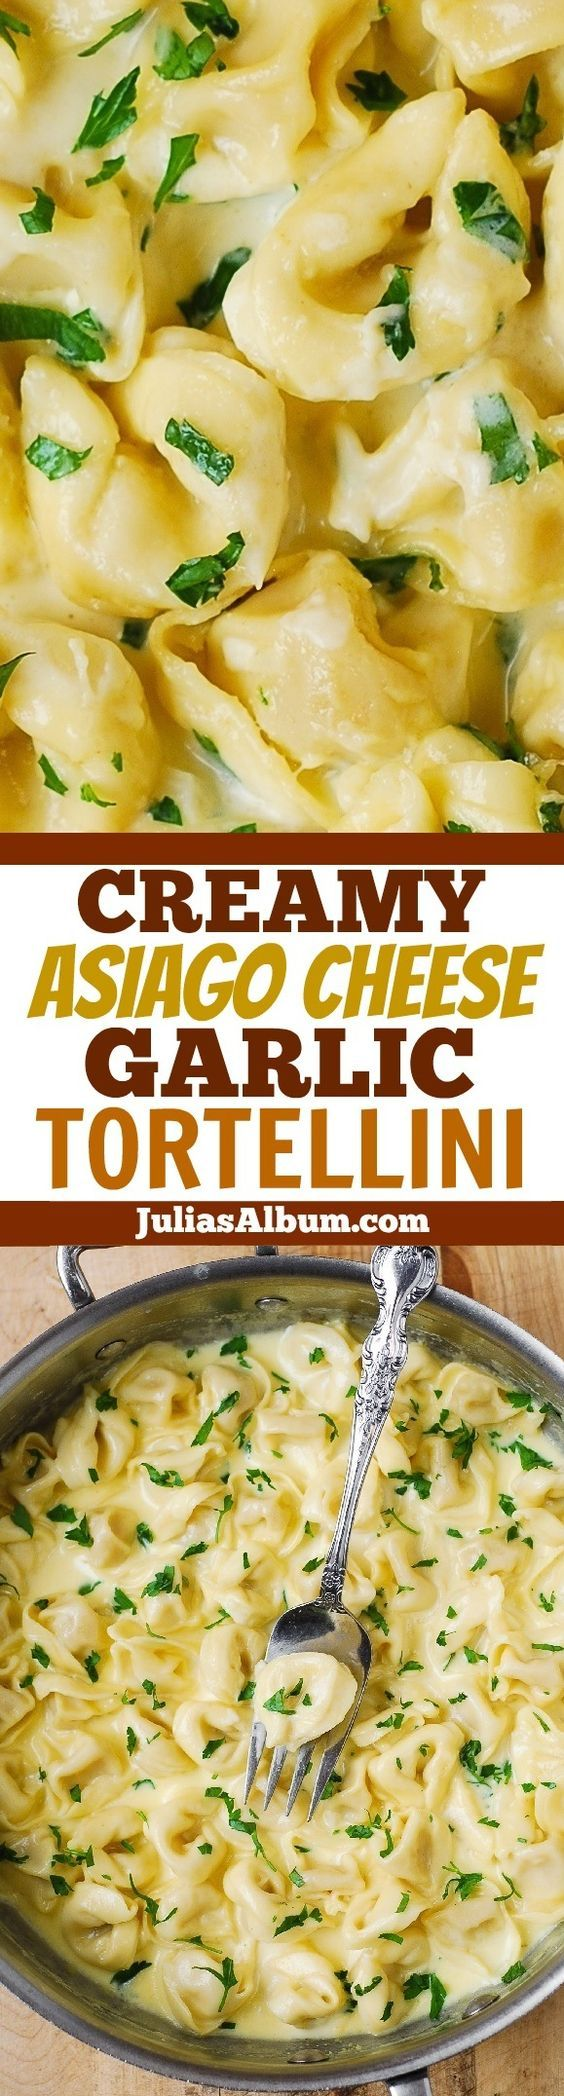 Tortellini with a creamy Asiago Cheese & Garlic Alfredo sauce. Easy, 30-minute pasta dinner recipe!